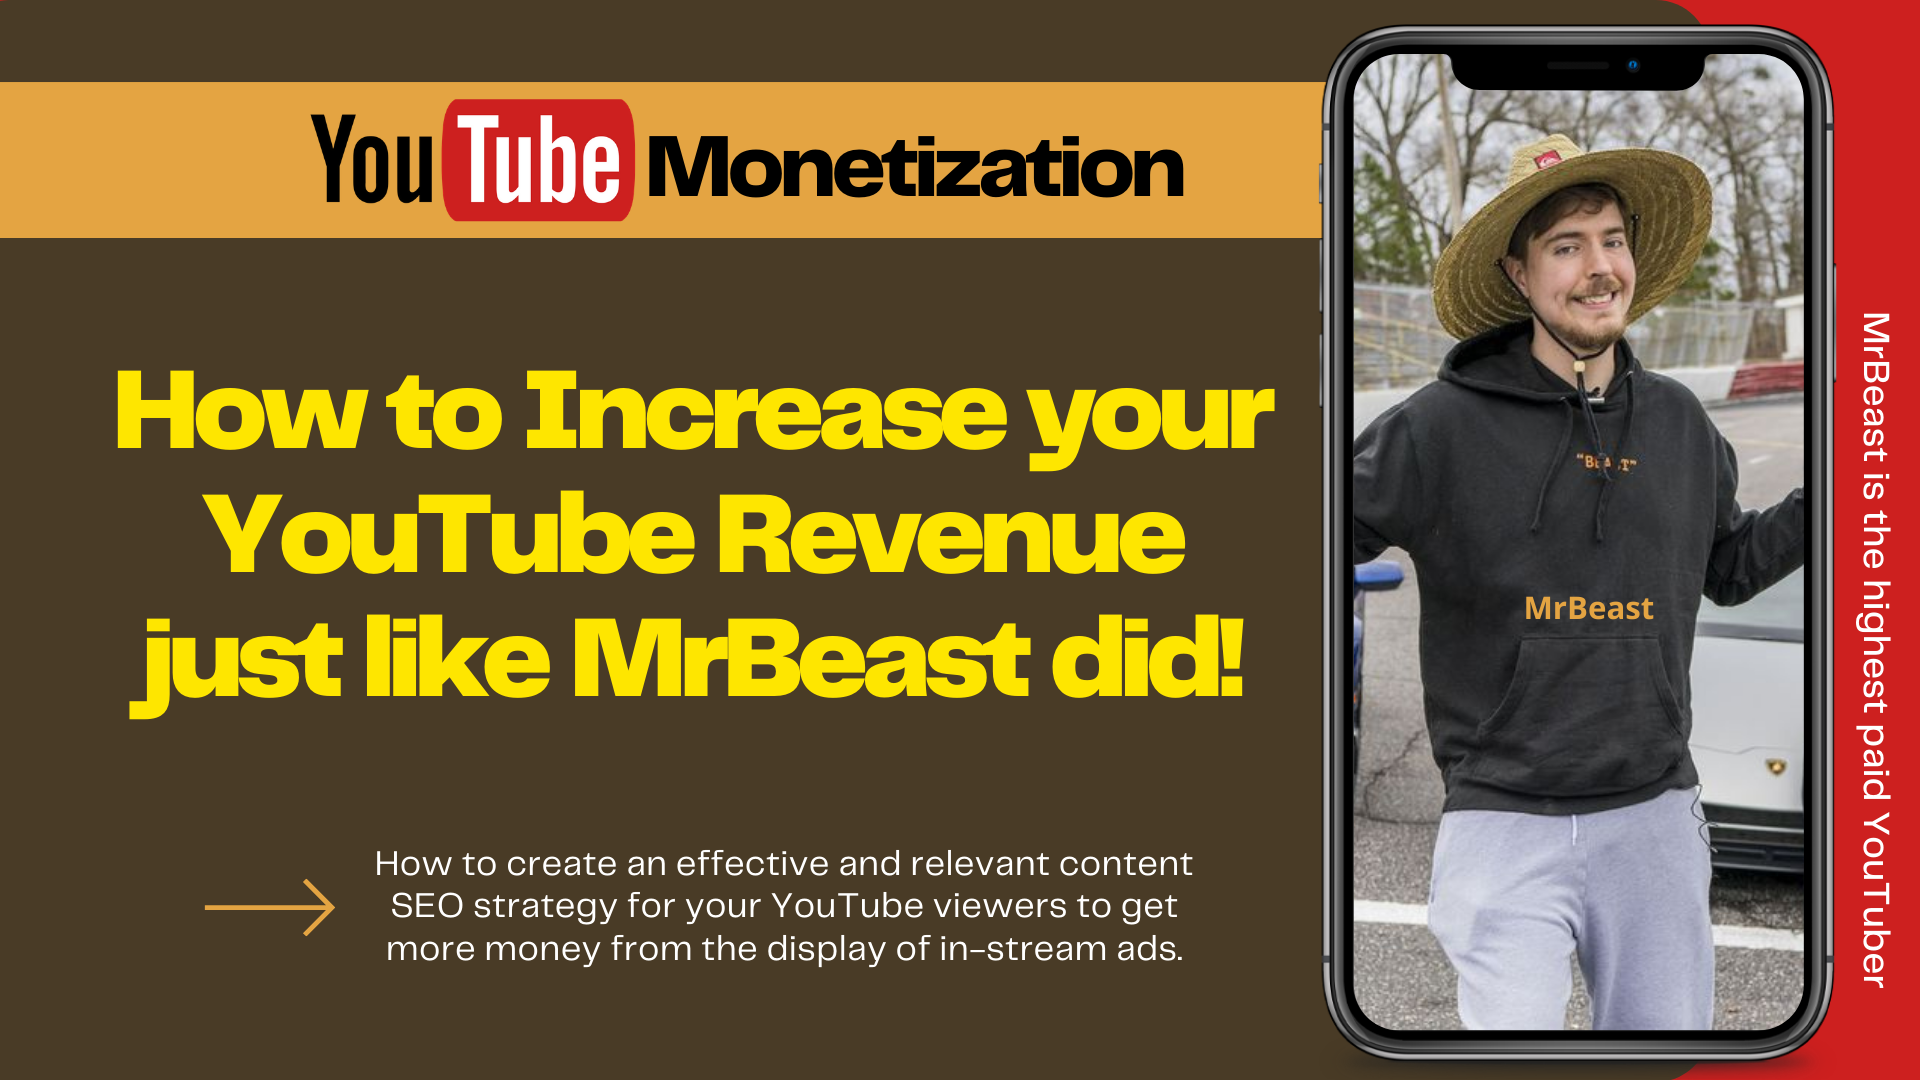 How to Increase YouTube Revenue